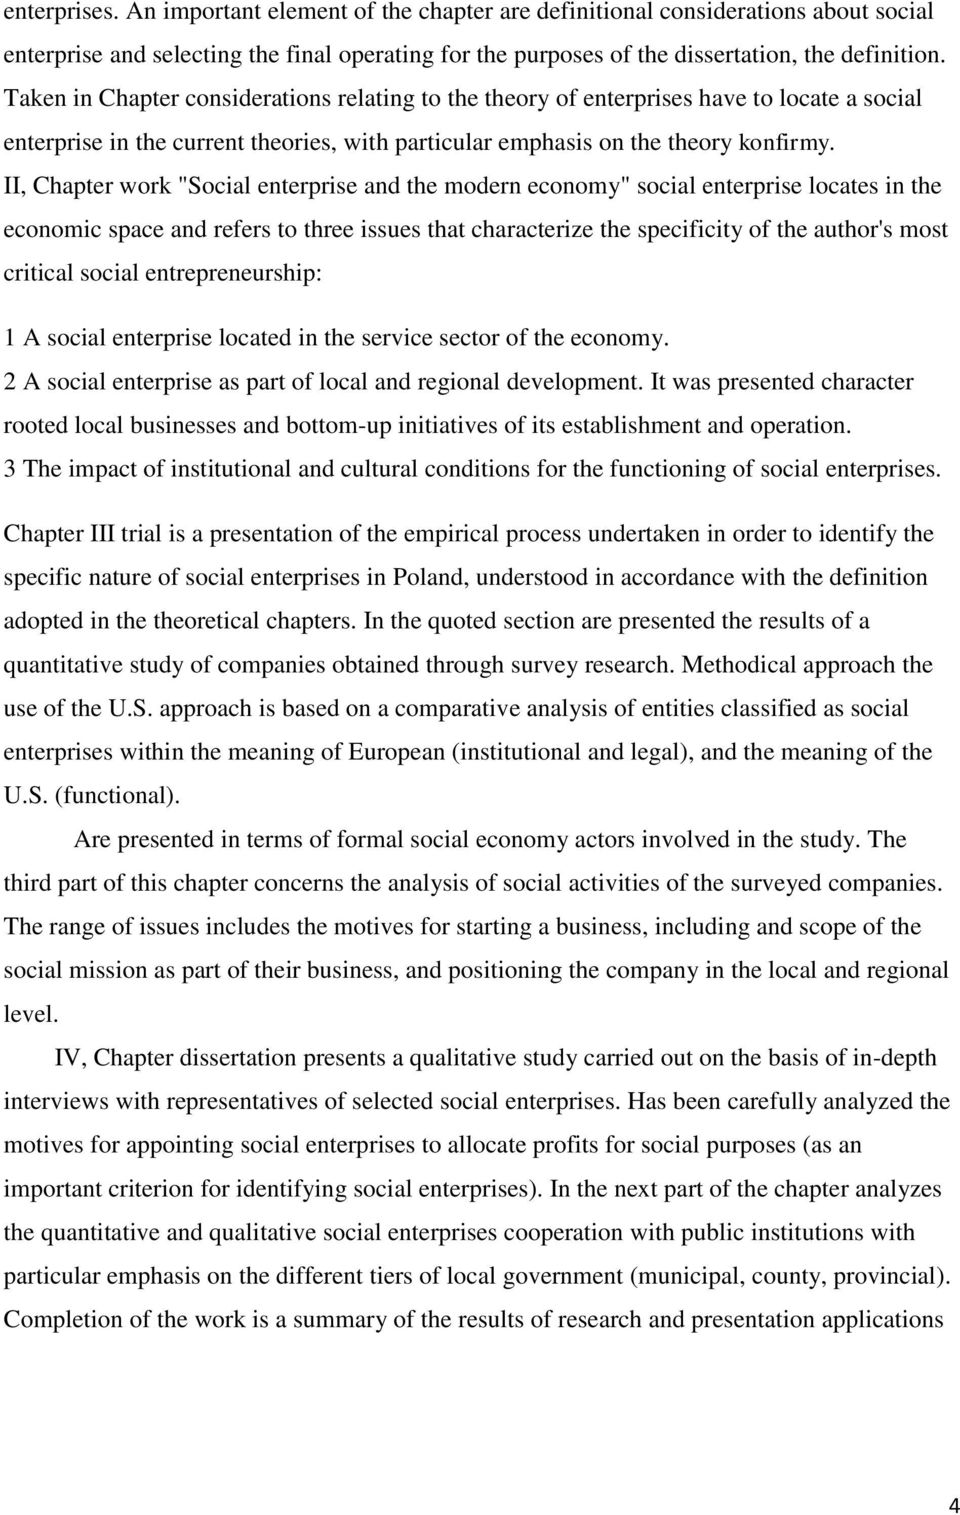 "II, Chapter work ""Social enterprise and the modern economy"" social enterprise locates in the economic space and refers to three issues that characterize the specificity of the author's most critical"